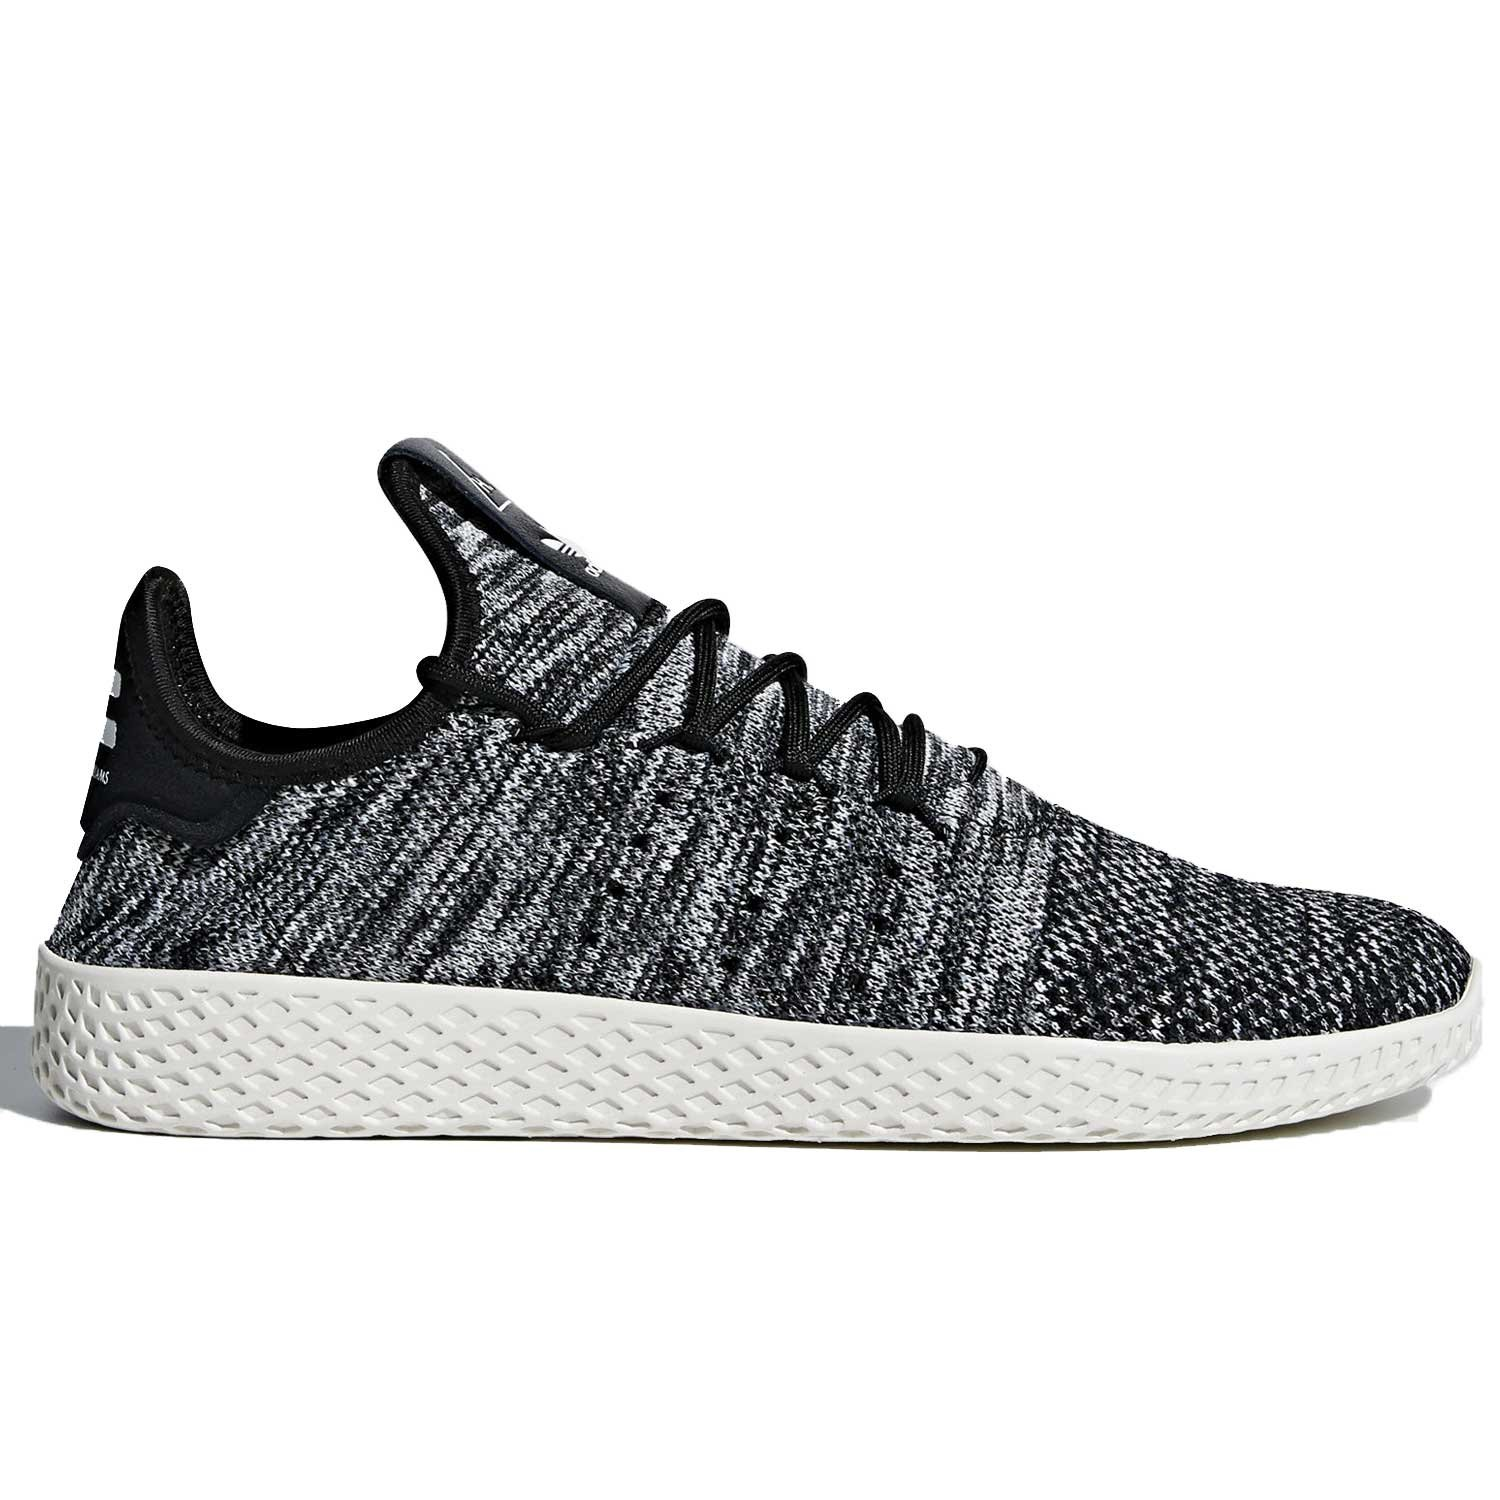 adidas Men's Pw Tennis Hu Sneaker B07B12446Z 6 D(M) US|White/Black